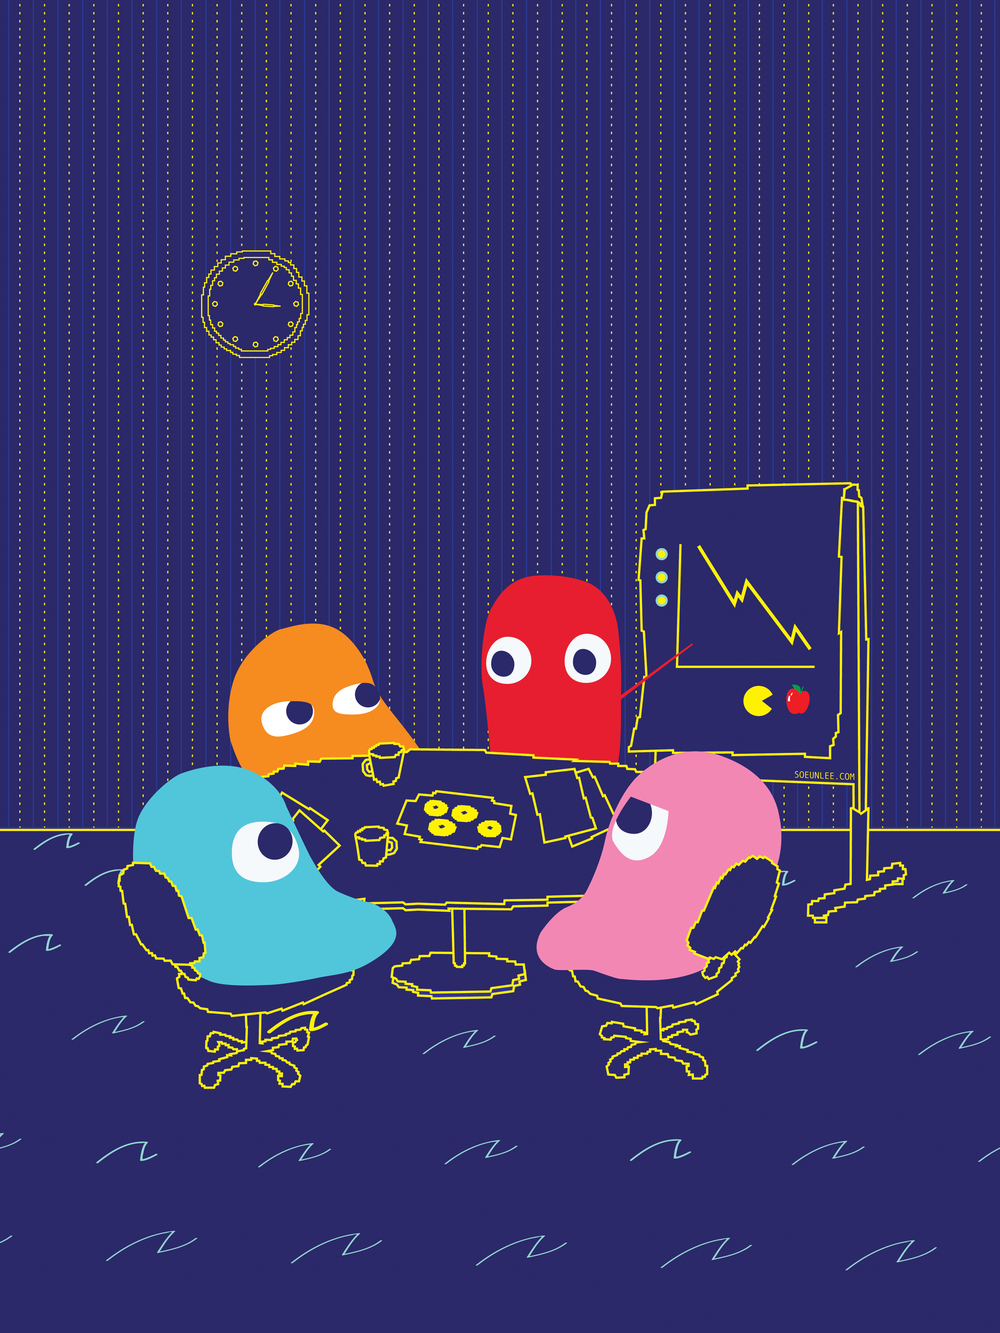 """Loss Prevention Against Pac-Man"" by Soeun Lee"